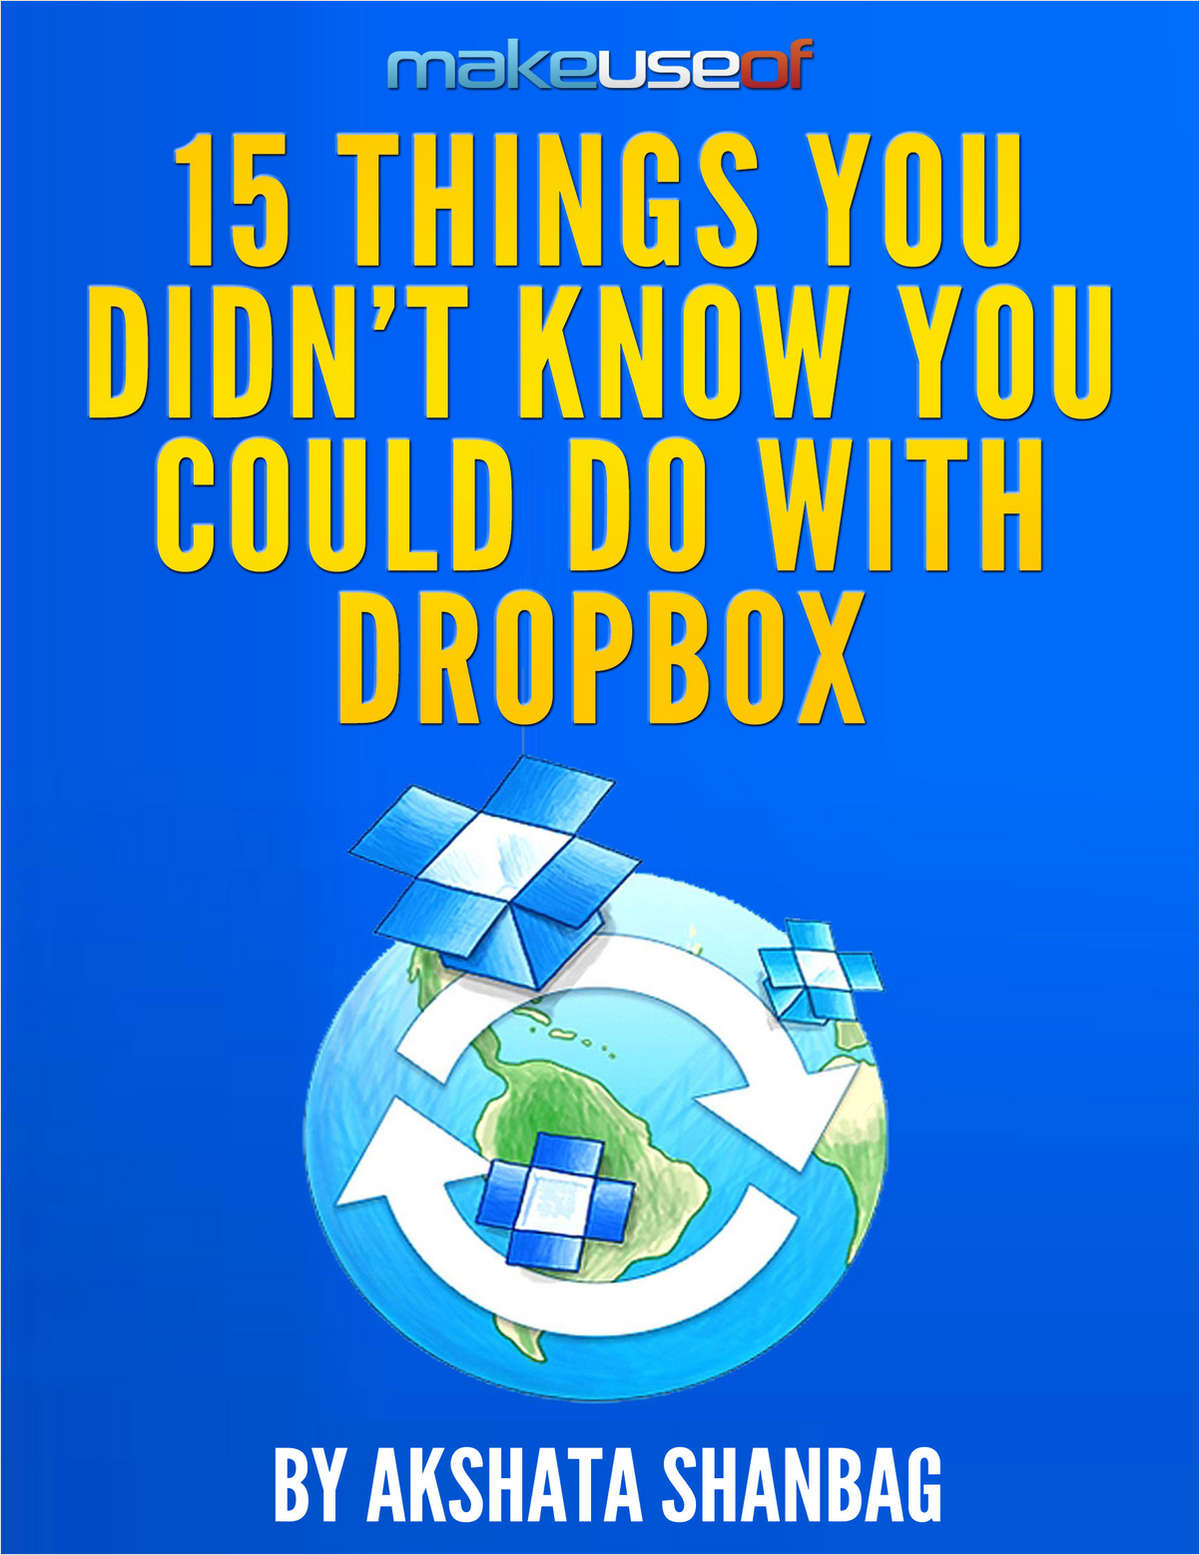 15 Things You Didn't Know You Could Do with Dropbox